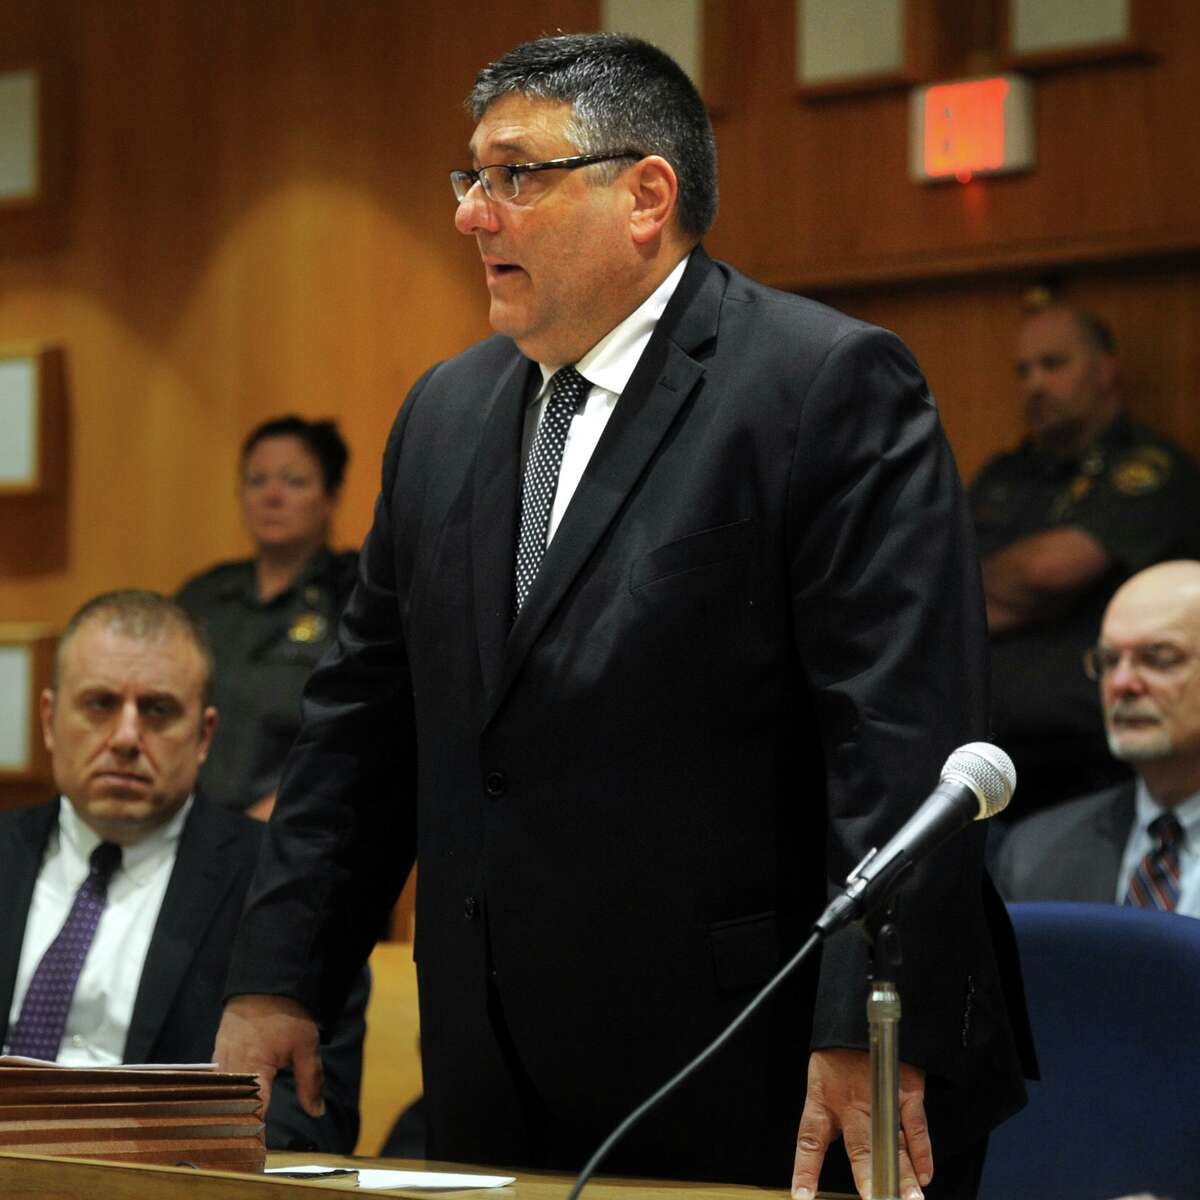 Joseph Corradino was appointed Bridgeport state's attorney on Thursday.